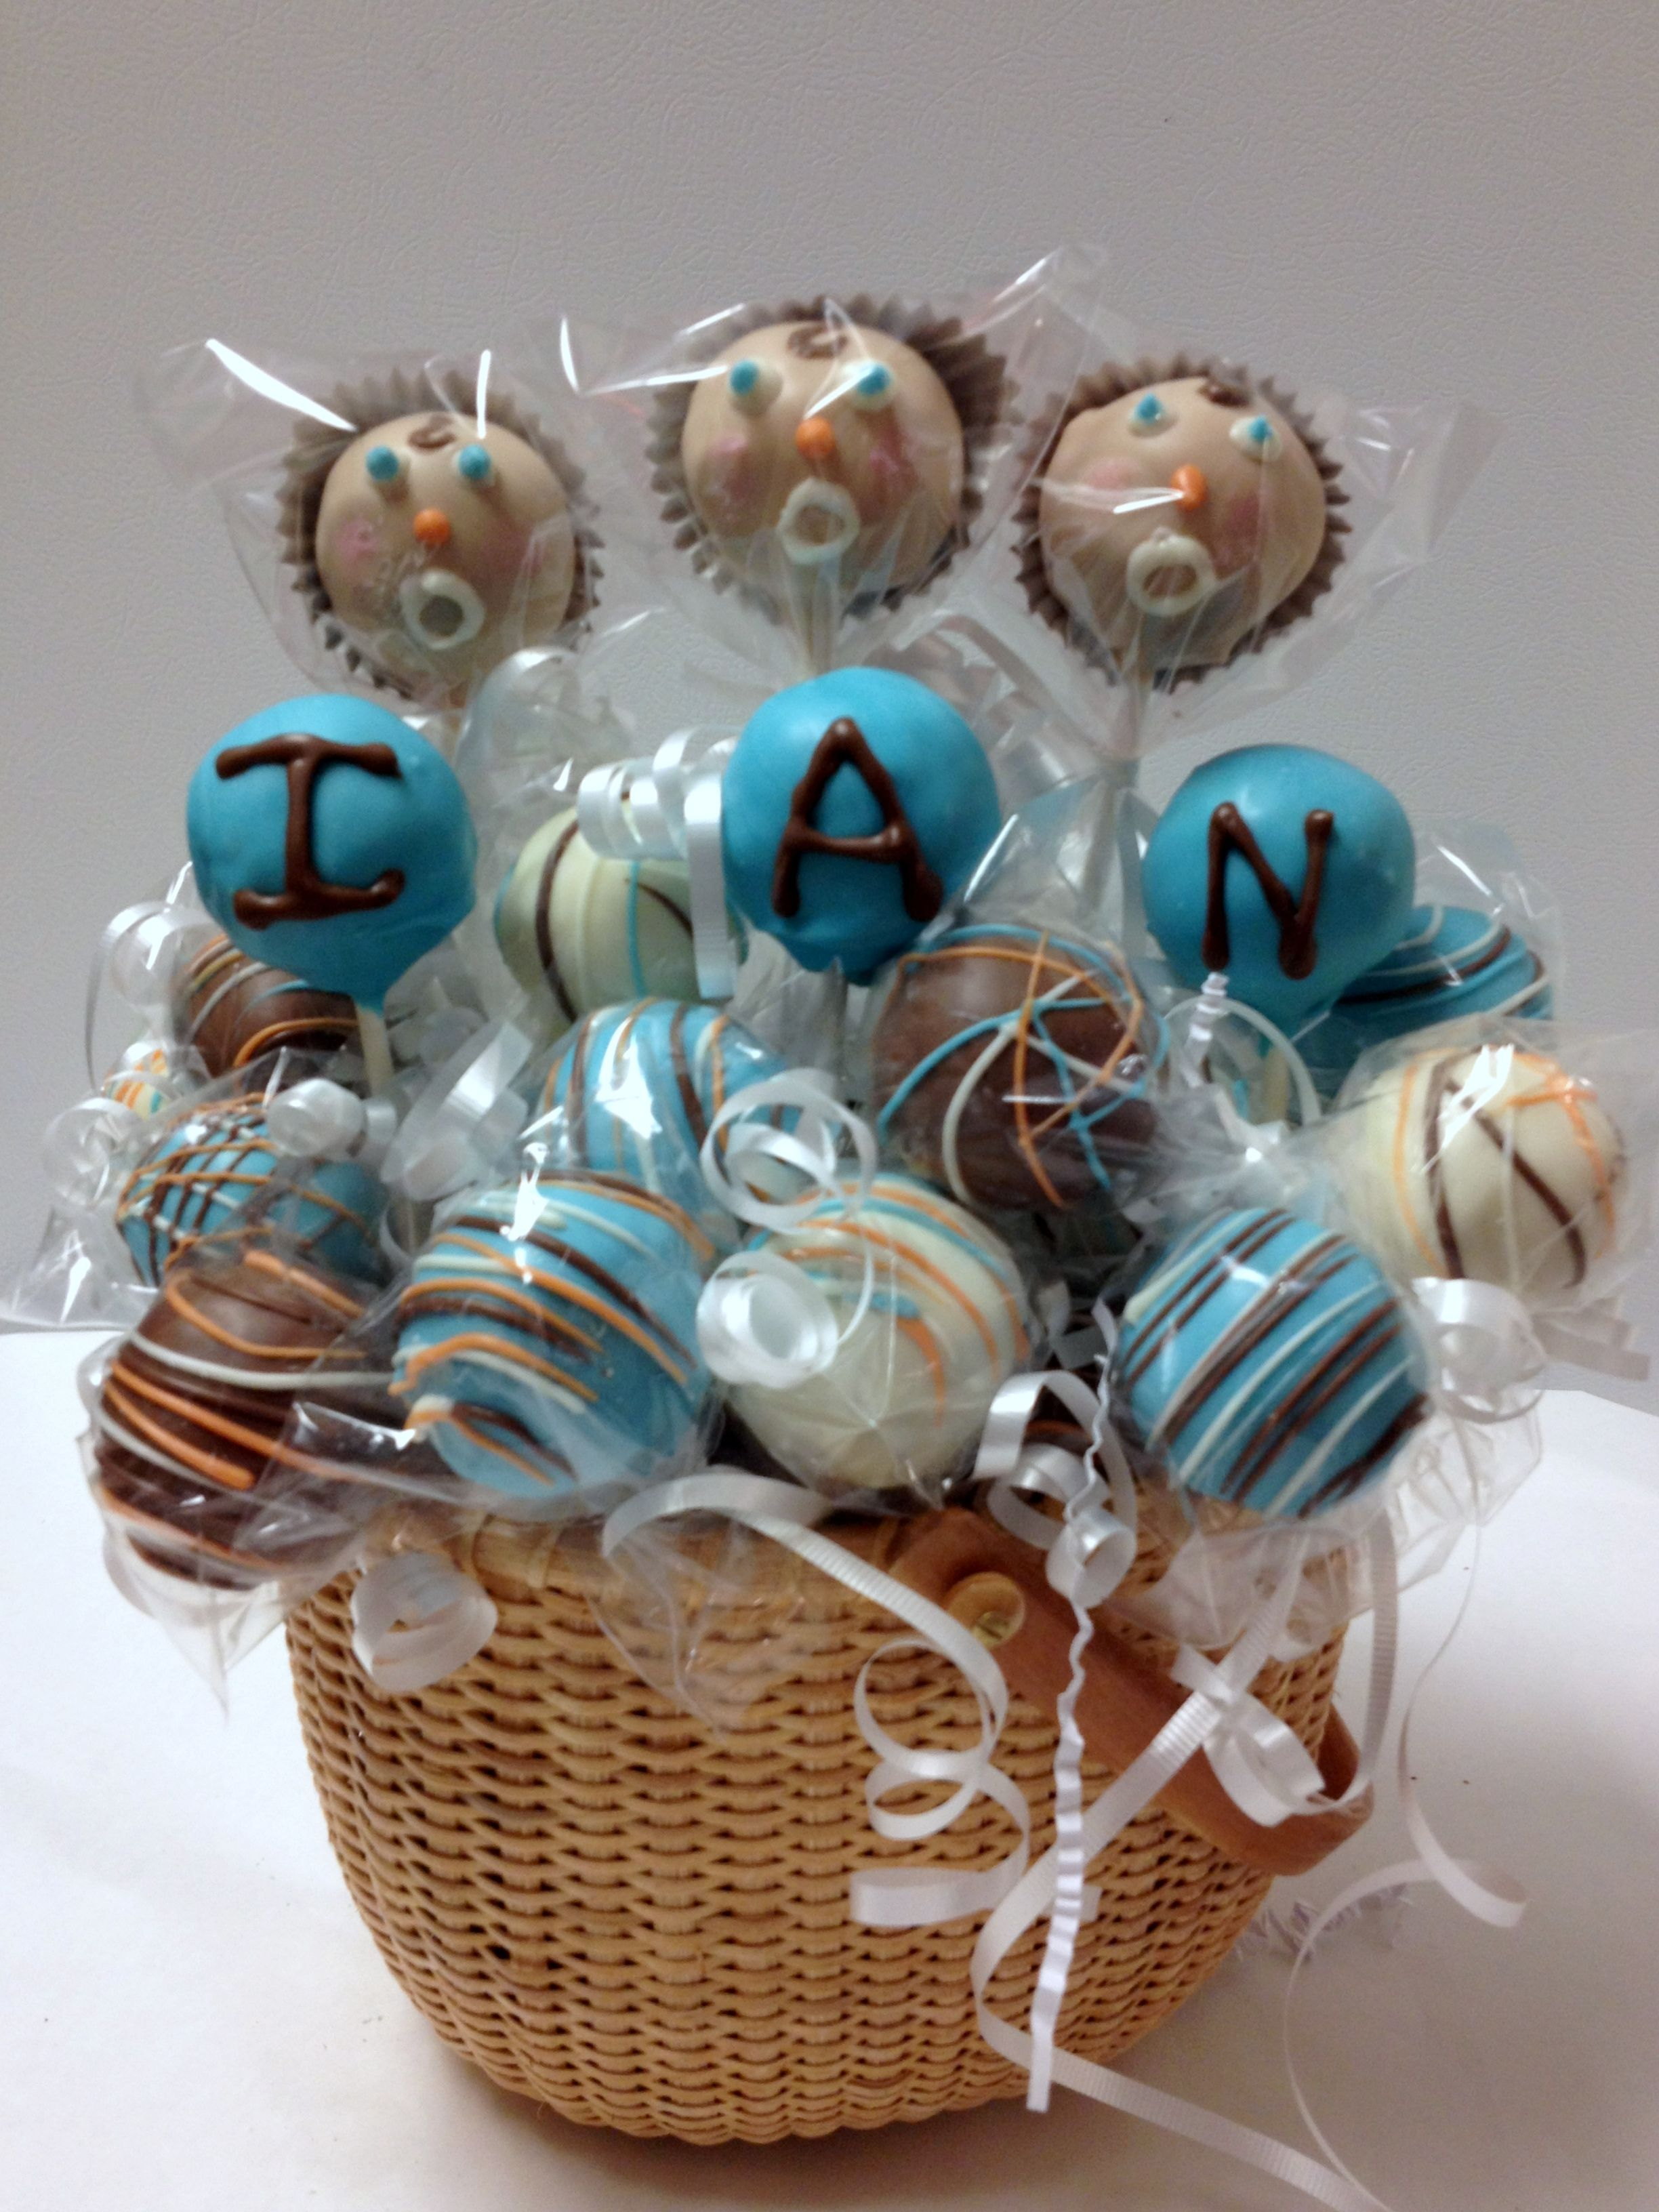 Happy 100th DAY birthday to Ian from Yummytecture Edible